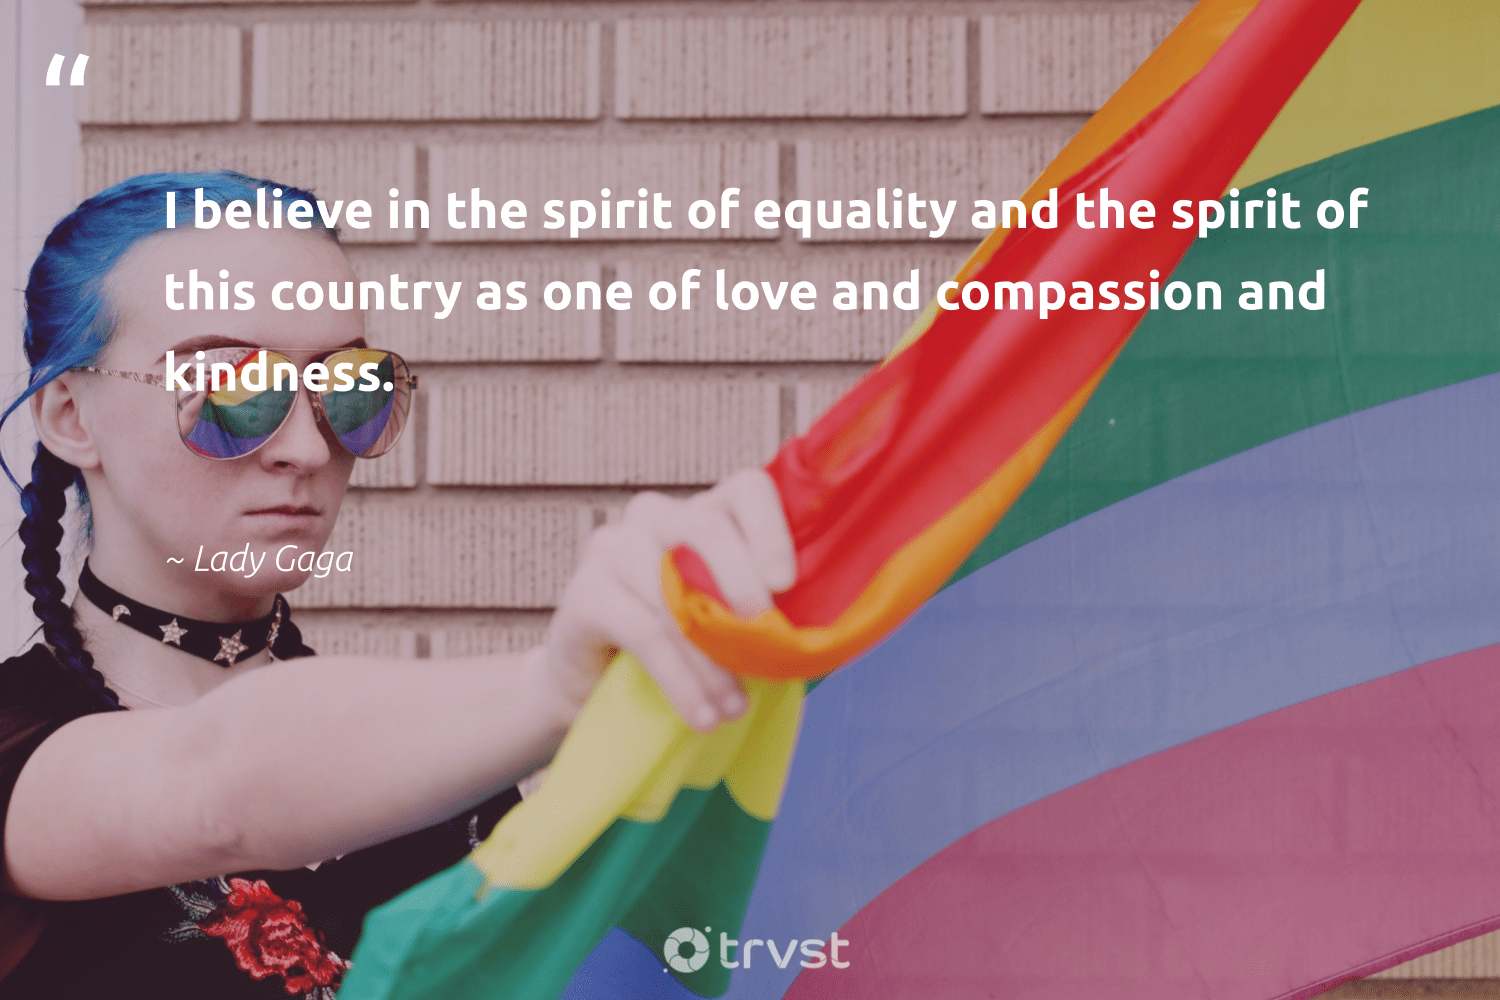 """I believe in the spirit of equality and the spirit of this country as one of love and compassion and kindness.""  - Lady Gaga #trvst #quotes #equality #love #standup #giveback #socialgood #gogreen #empowerment #makeadifference #socialchange #dogood"